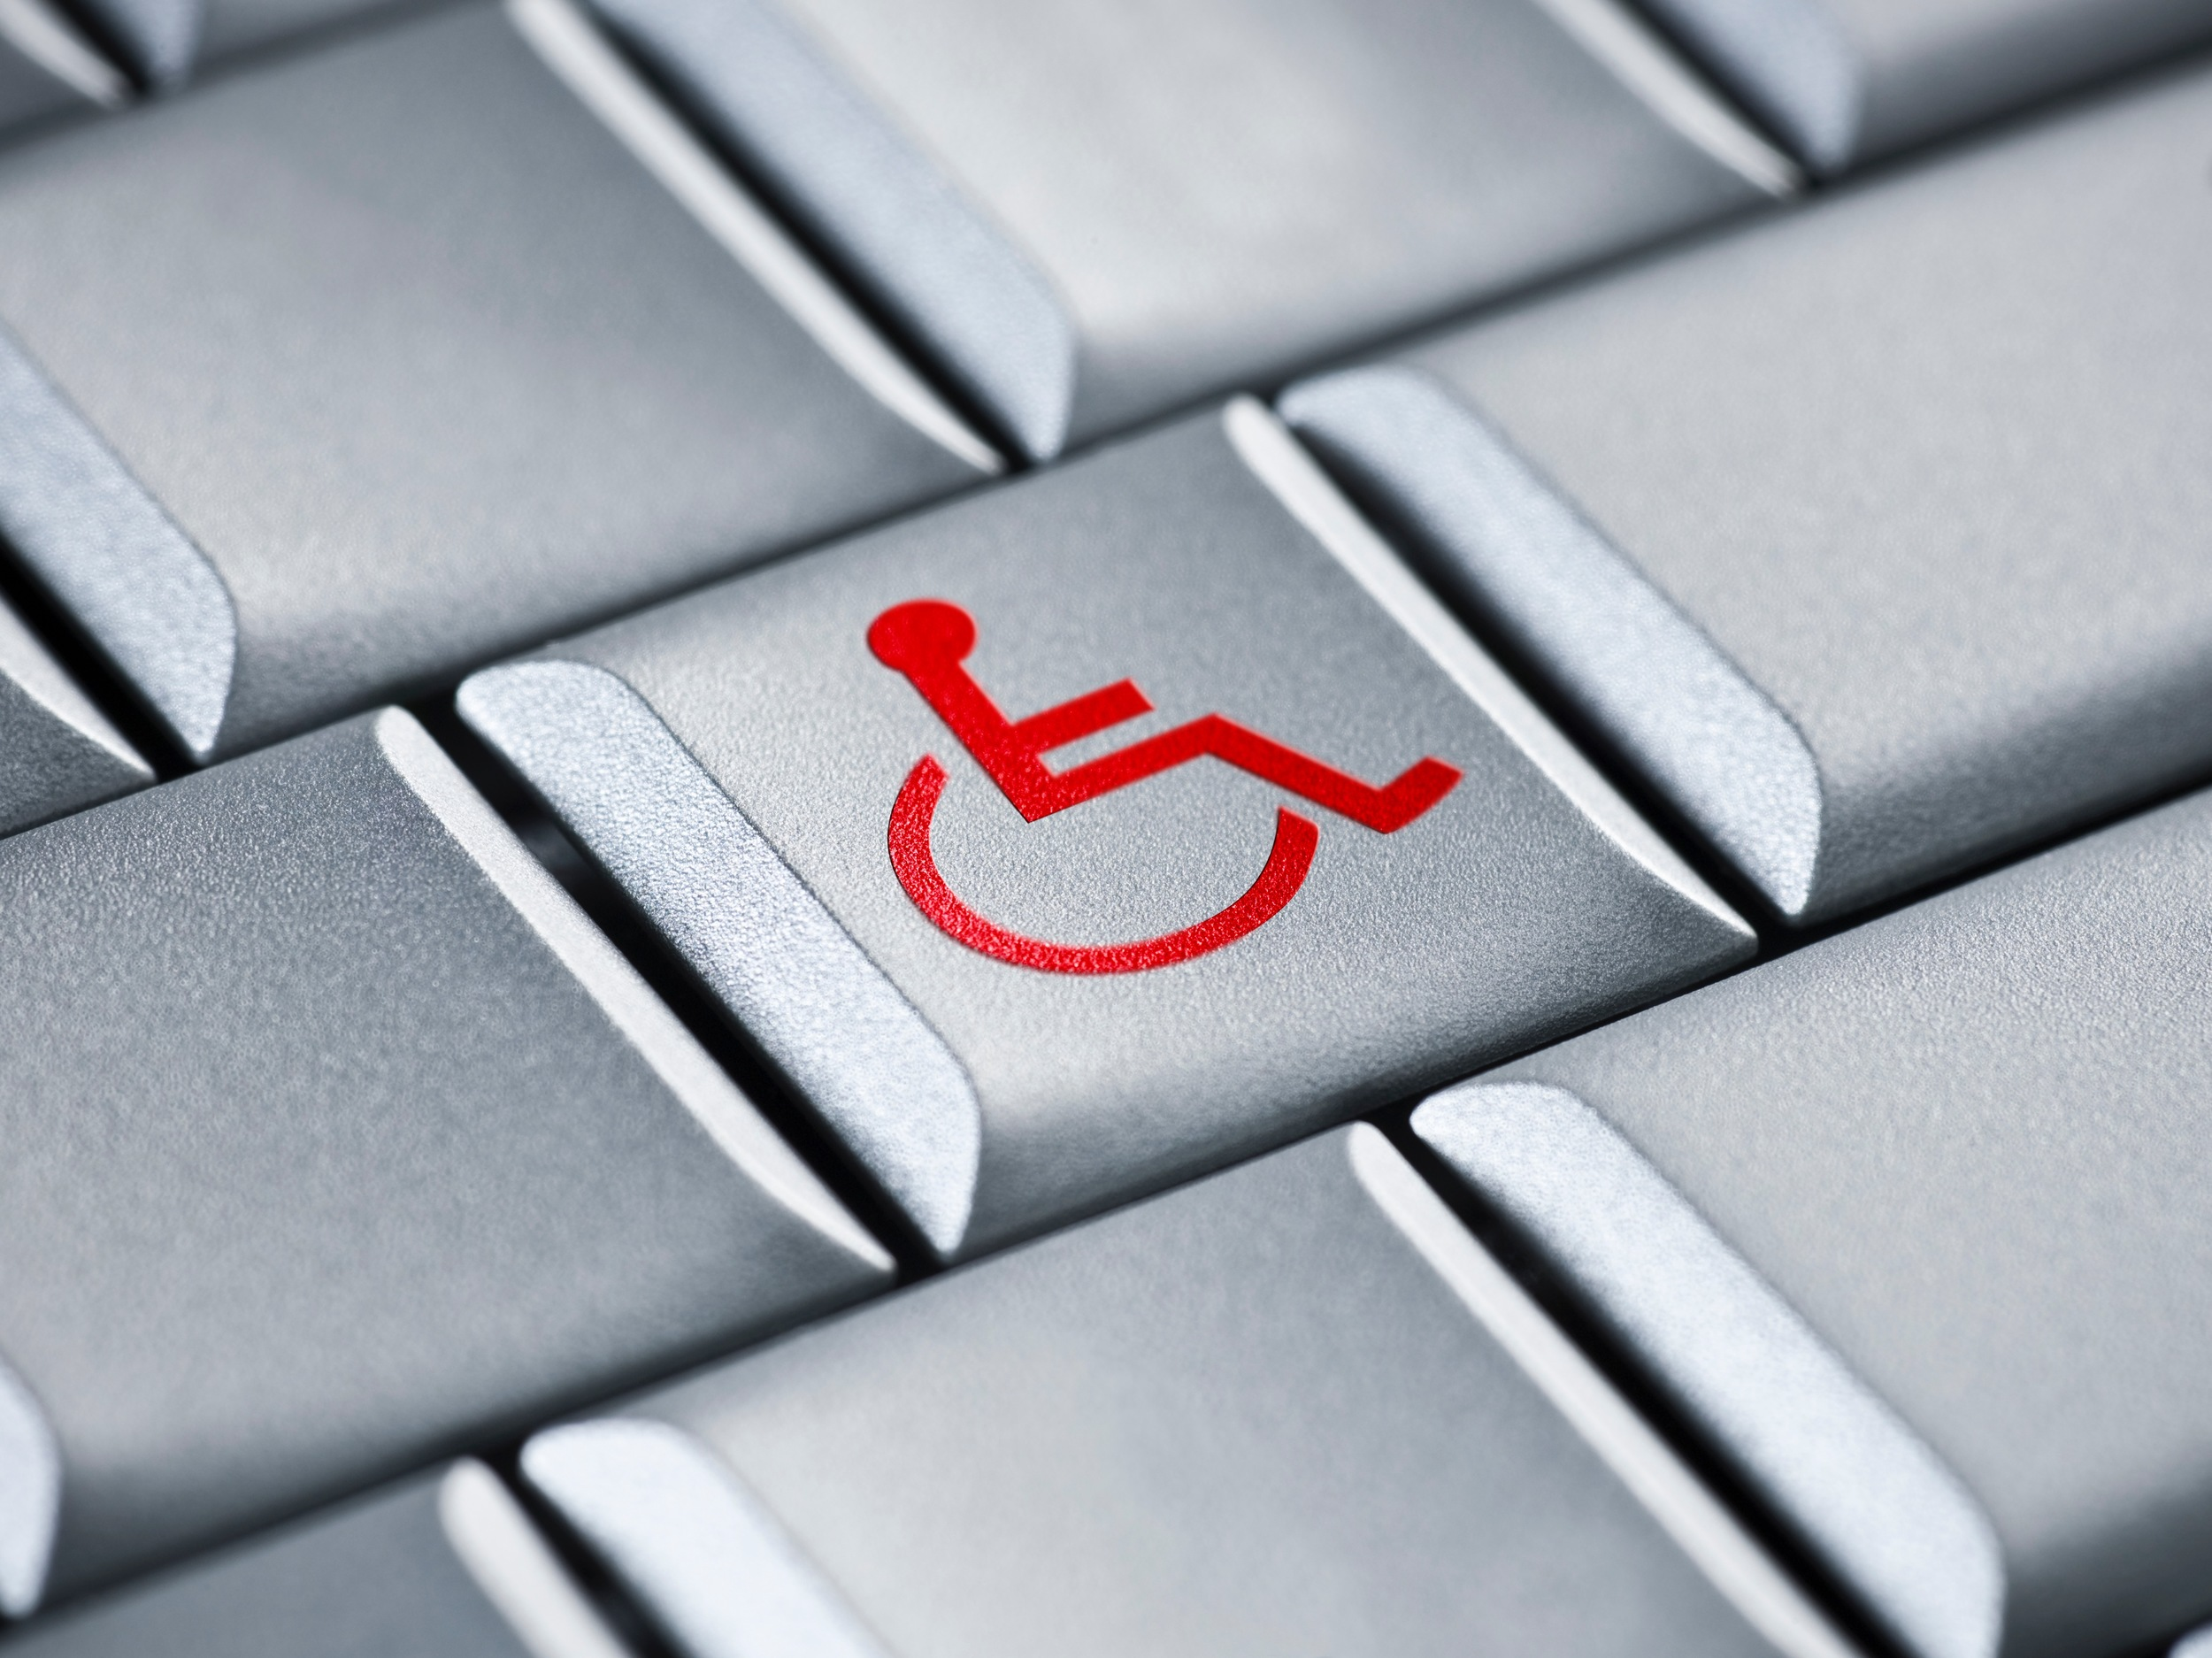 Closeup photo of a gray computer keyboard, with one key marked with a red wheelchair symbol